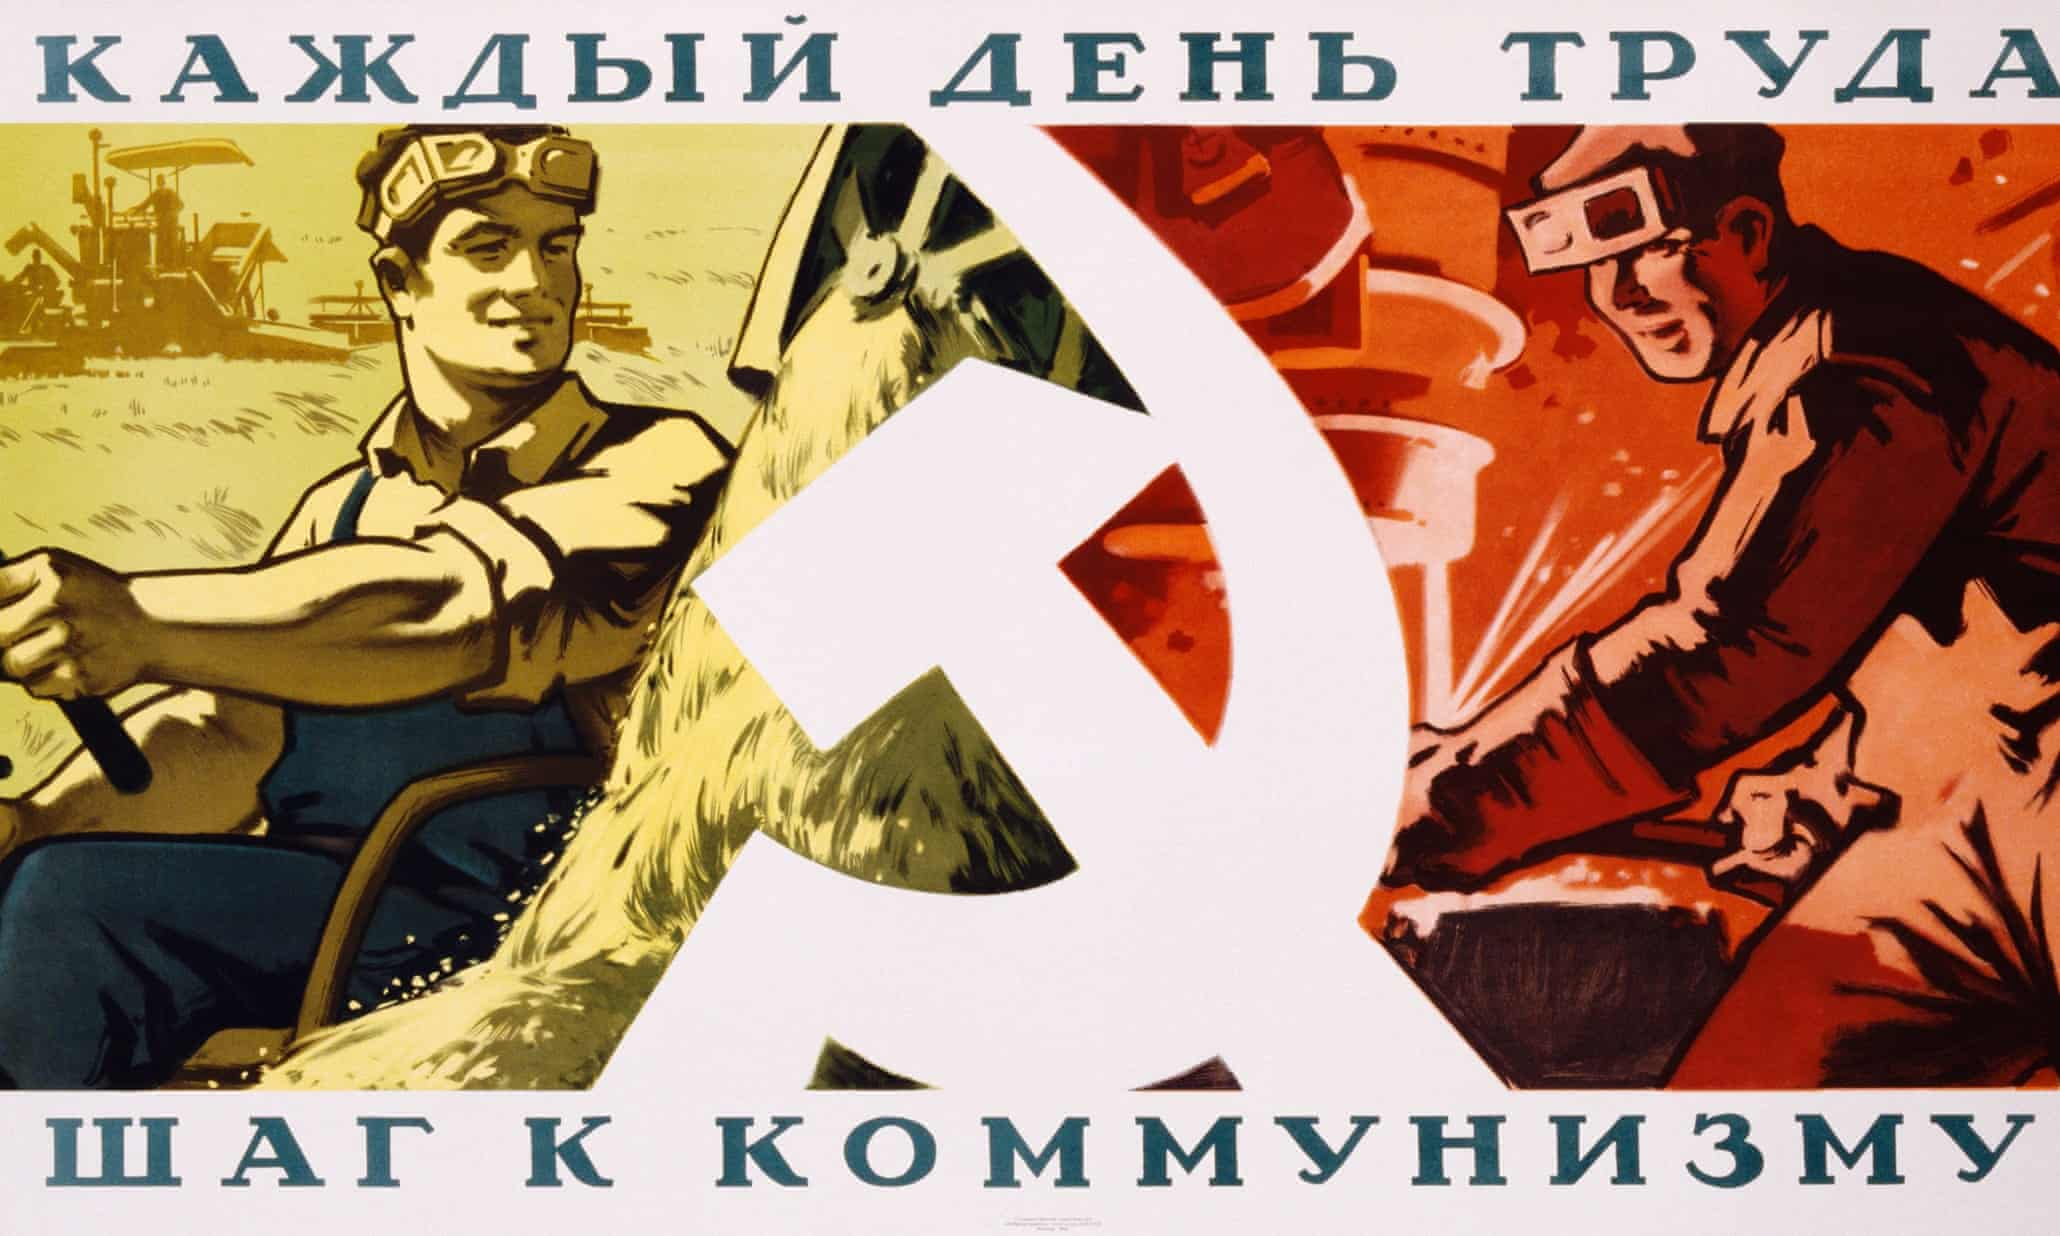 Seven decades of Soviet propaganda – in pictures